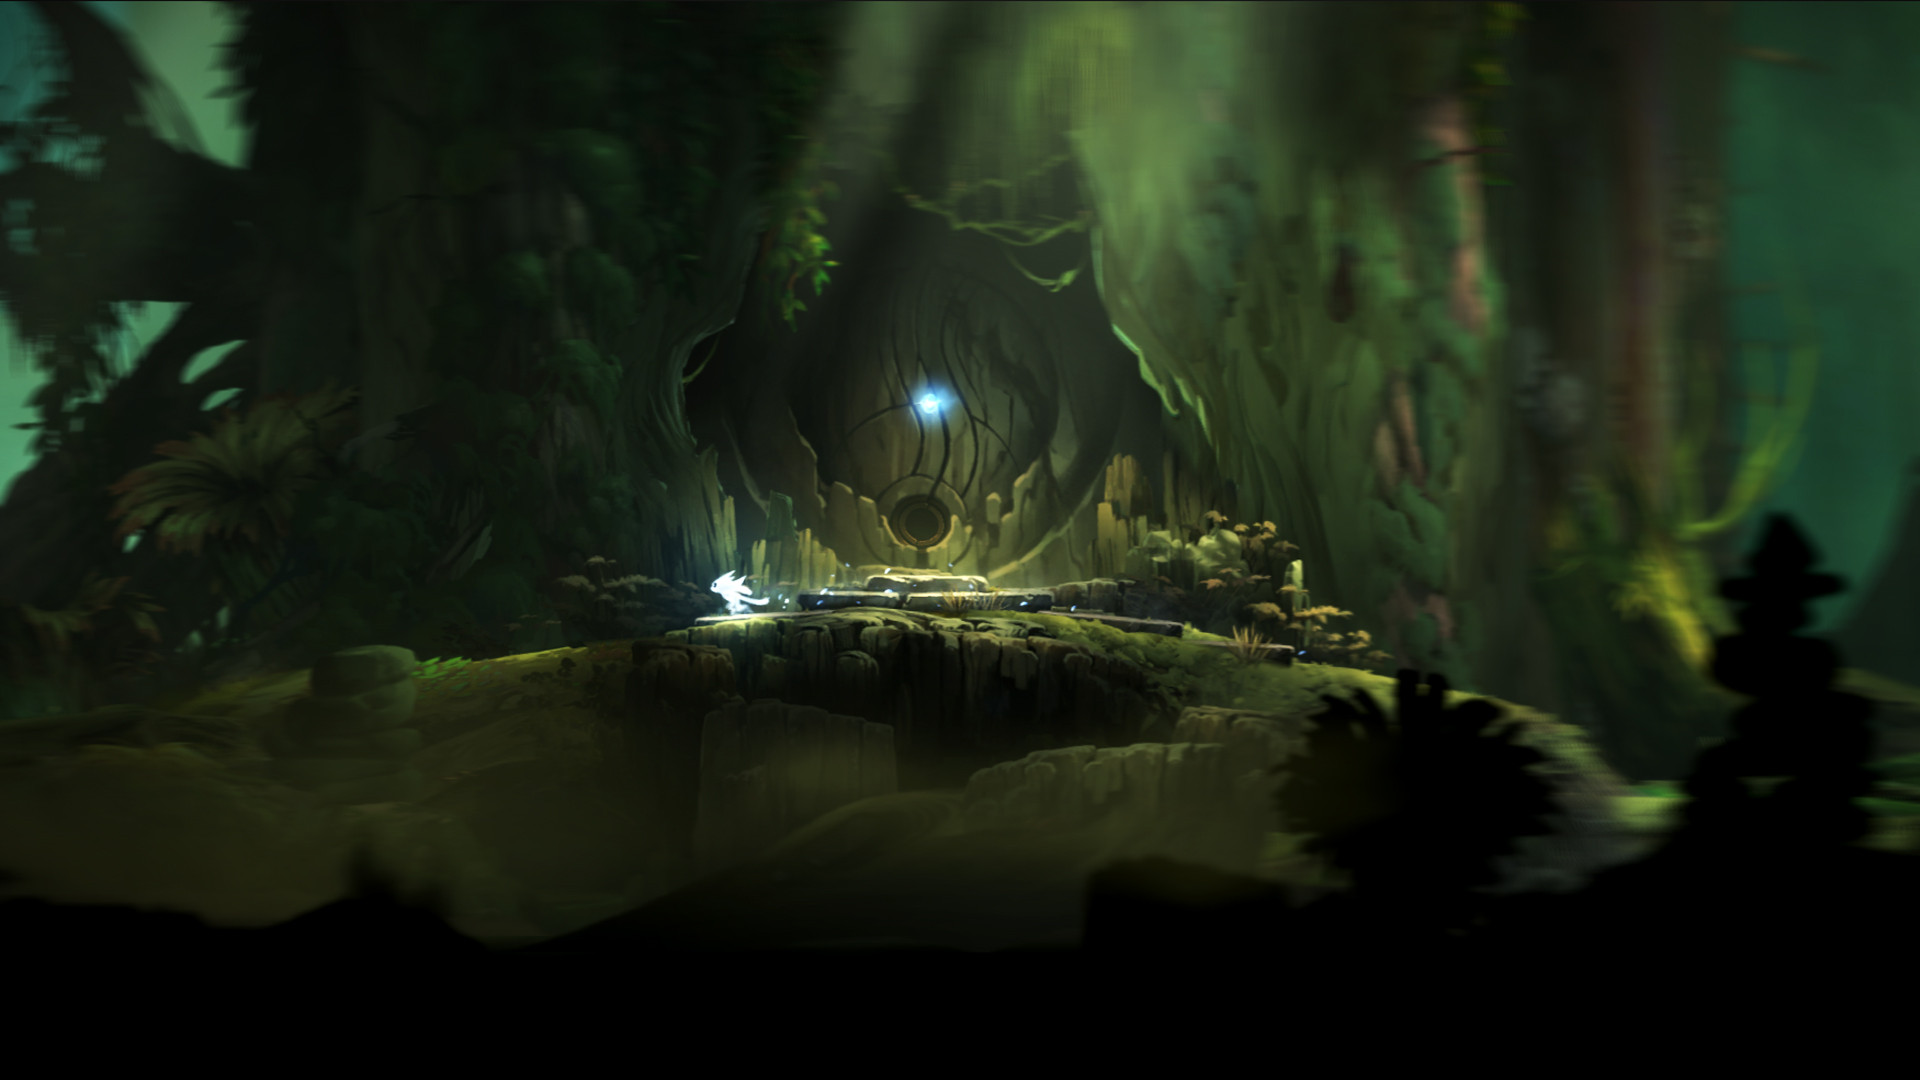 ori and the blind forest hd wallpaper background image 1920x1080ori and the blind forest hd wallpaper background image 1920x1080 id 540807 wallpaper abyss